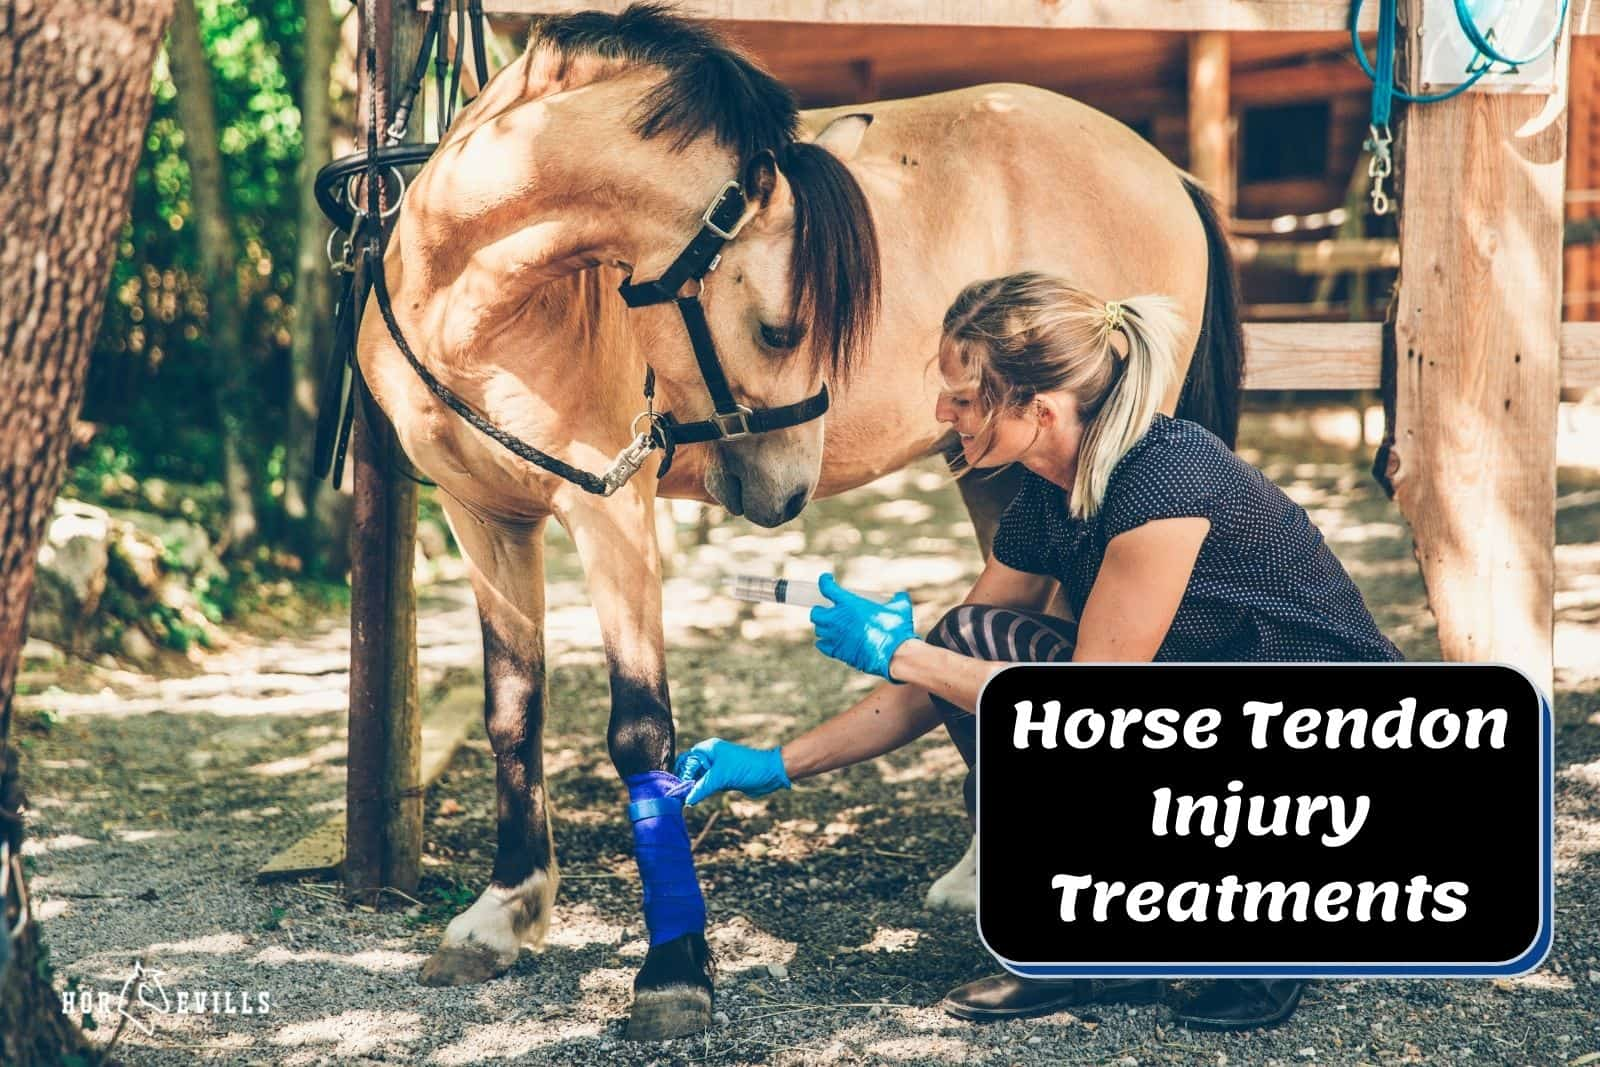 a lady treating his horse tendon injury